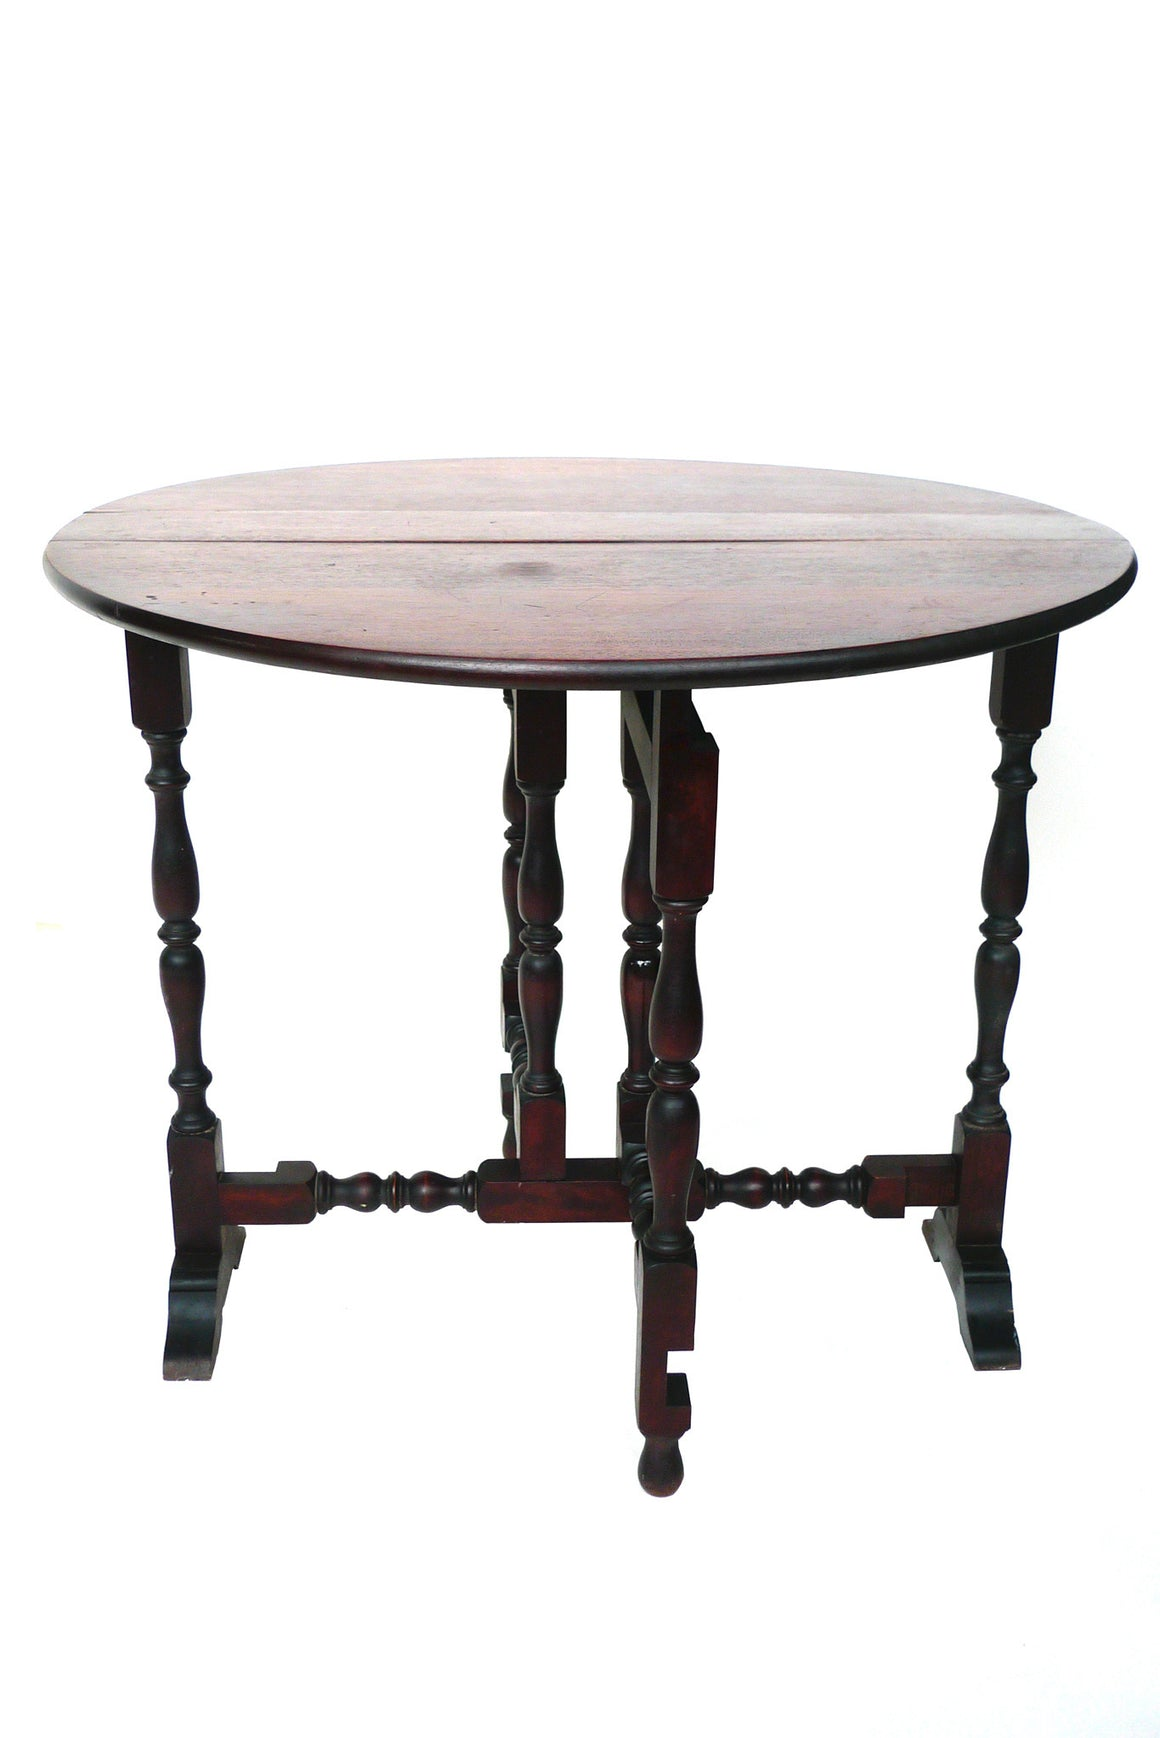 19th Century Gateleg Table